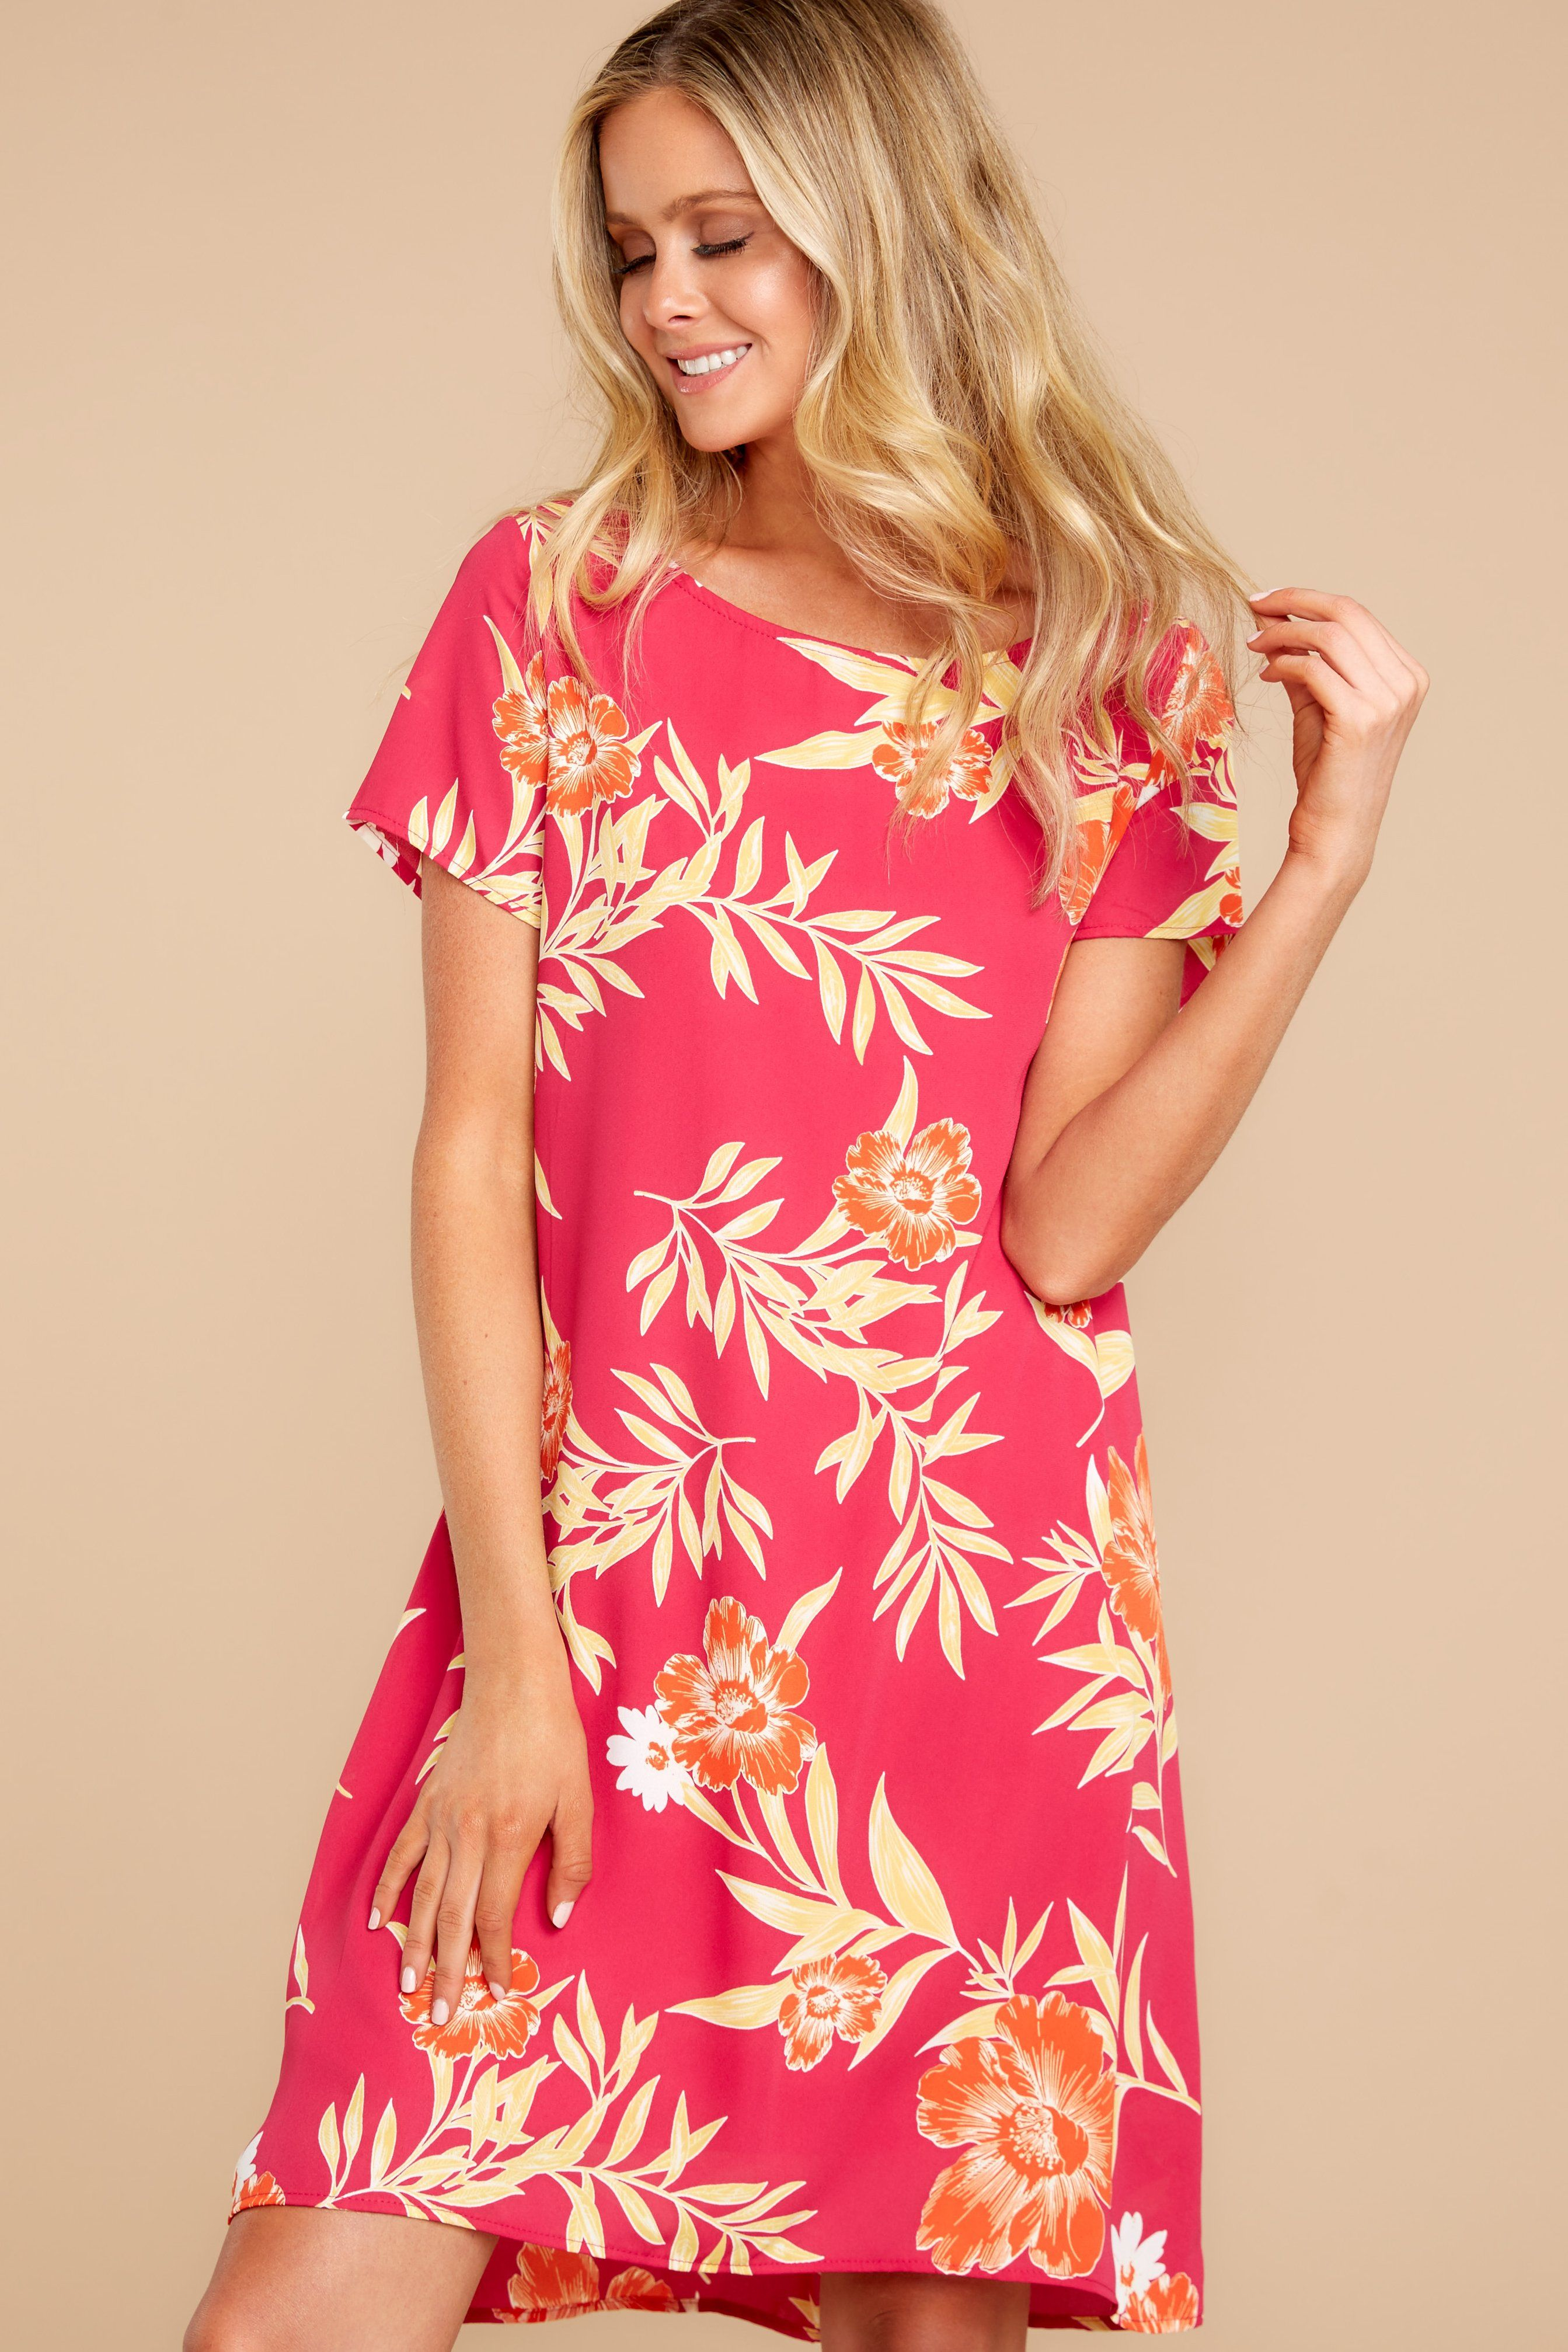 9fb0f491fbe Cute Fuchsia Tropical Print Dress - Trendy Tropical Print Dress - Dress -   44.00 – Red Dress Boutique